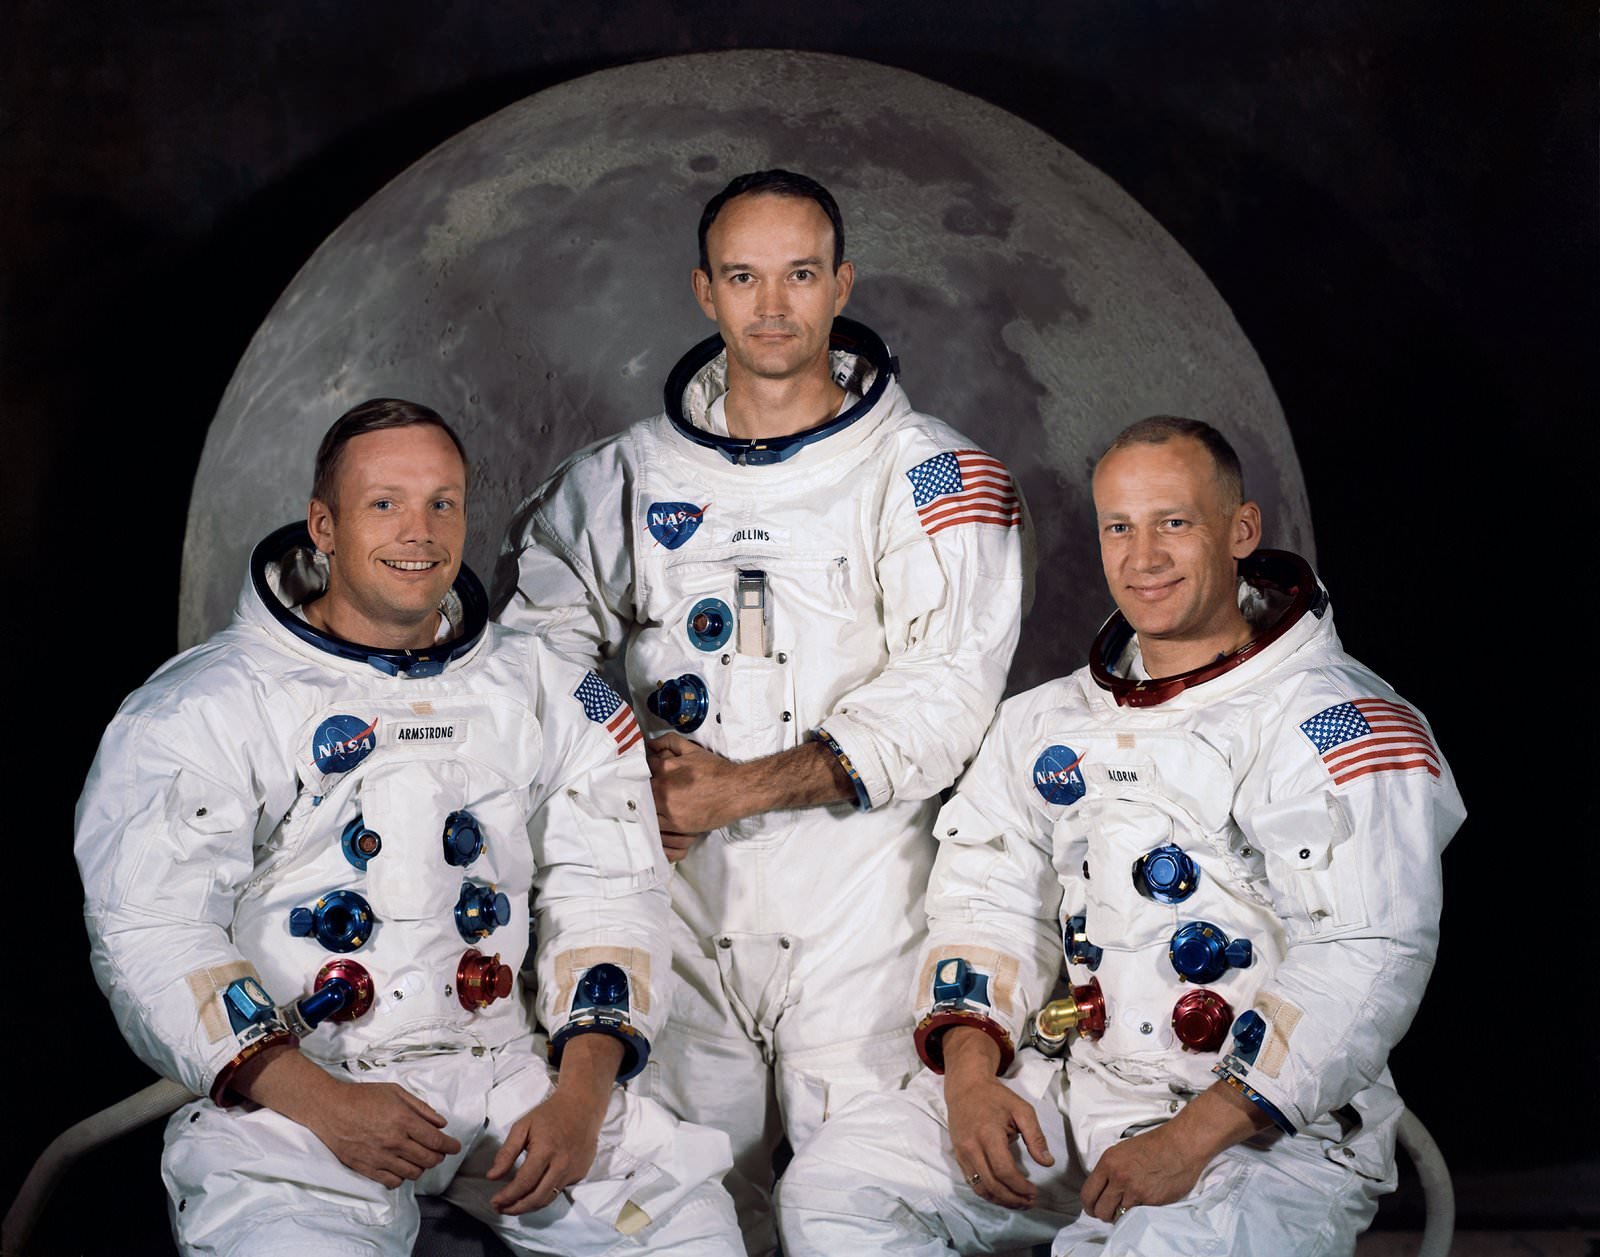 Apollo 11 Crew Photo. Credit: NASA